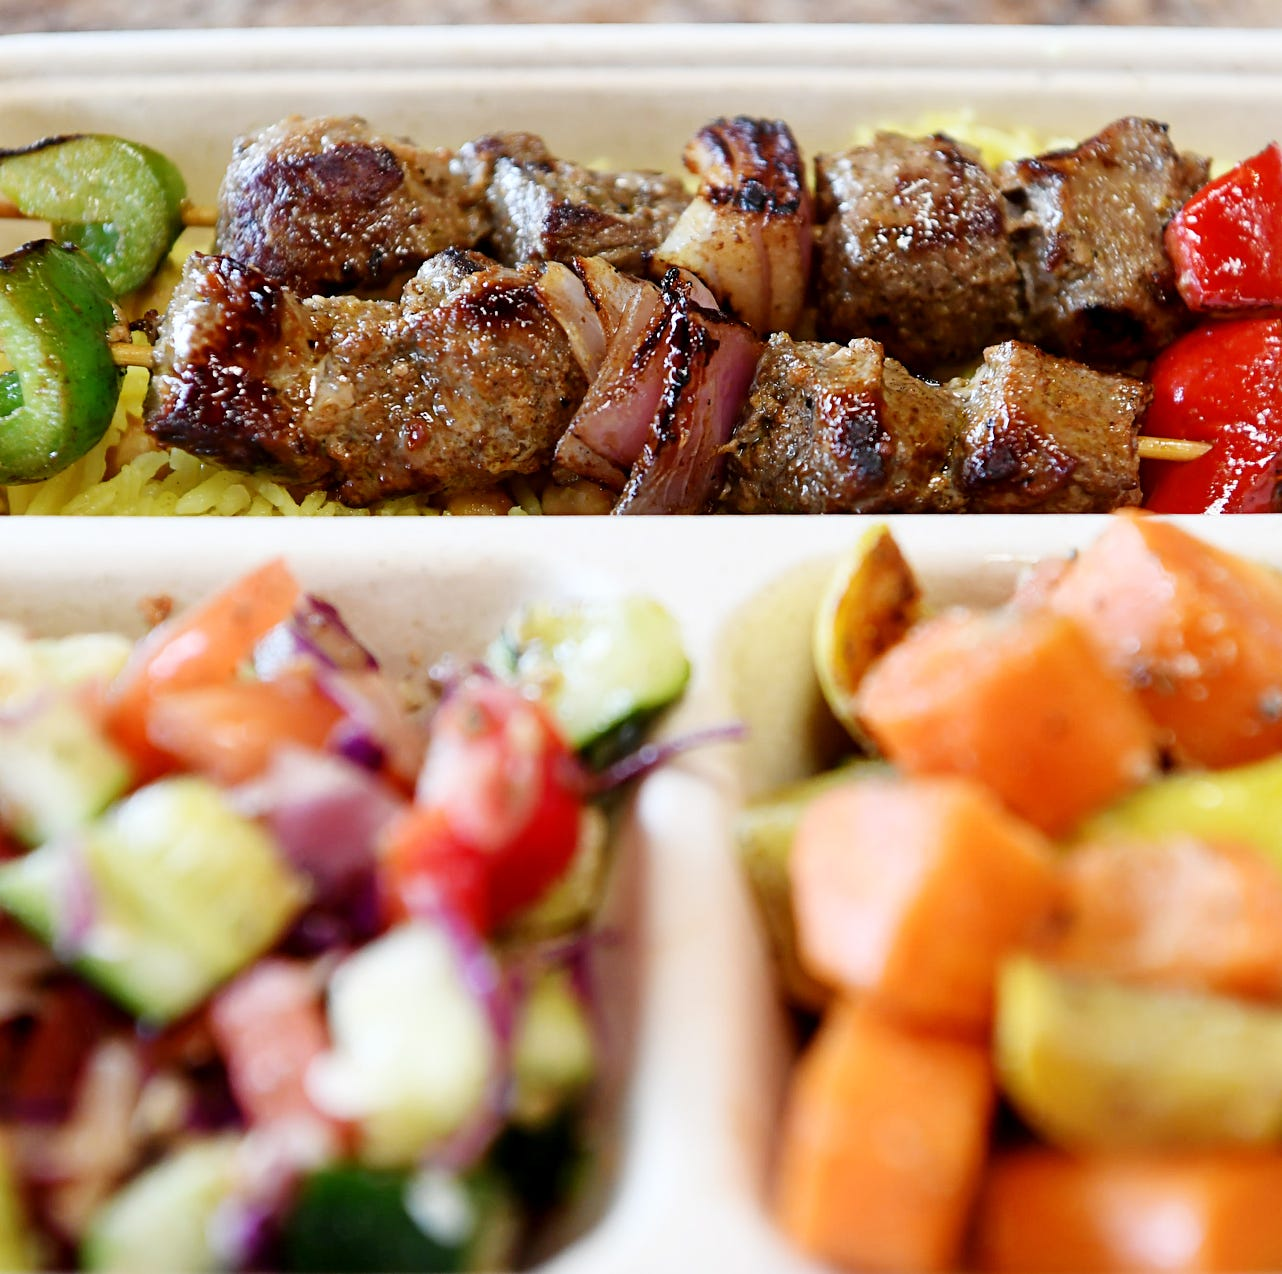 Dining review: Mr. Kabab Grill brings Middle Eastern food to East Asheville